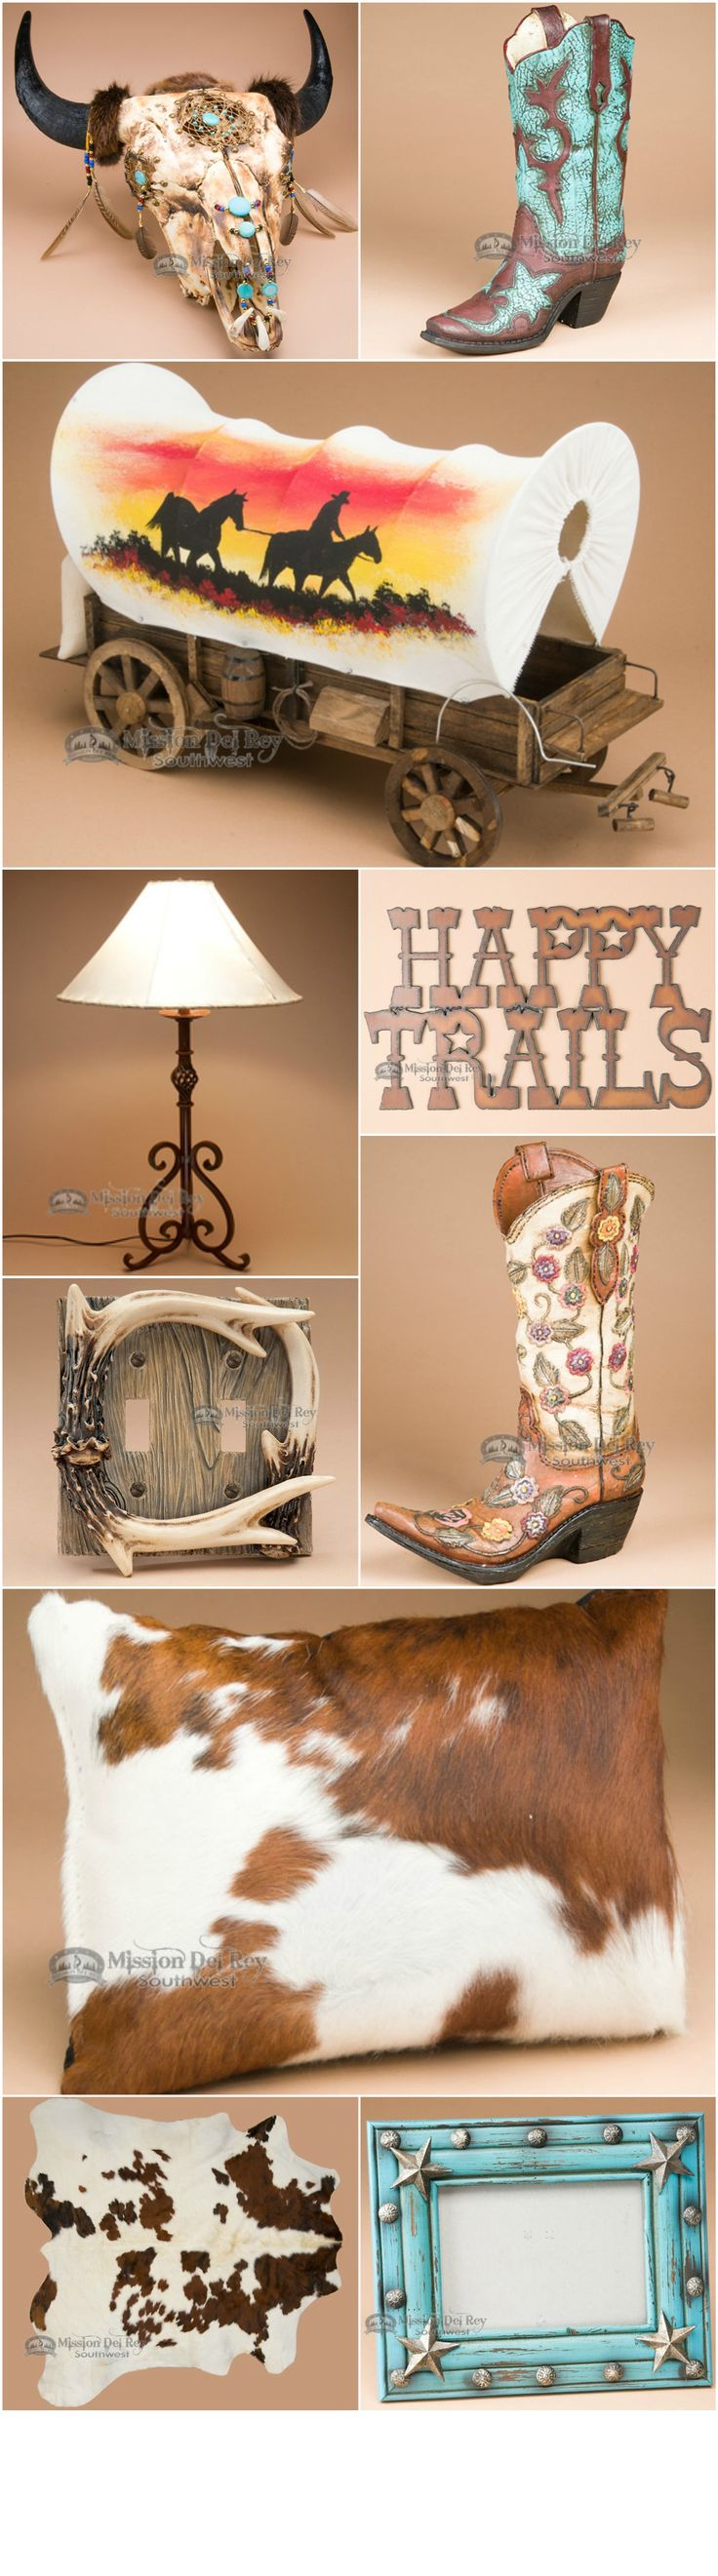 Find the perfect western decor for a cabin, lodge, or rustic style home.  Choose from a wide variety of southwestern lamps and lampshades, cowboy decor and rustic metal art.  See our entire collection at http://www.missiondelrey.com/